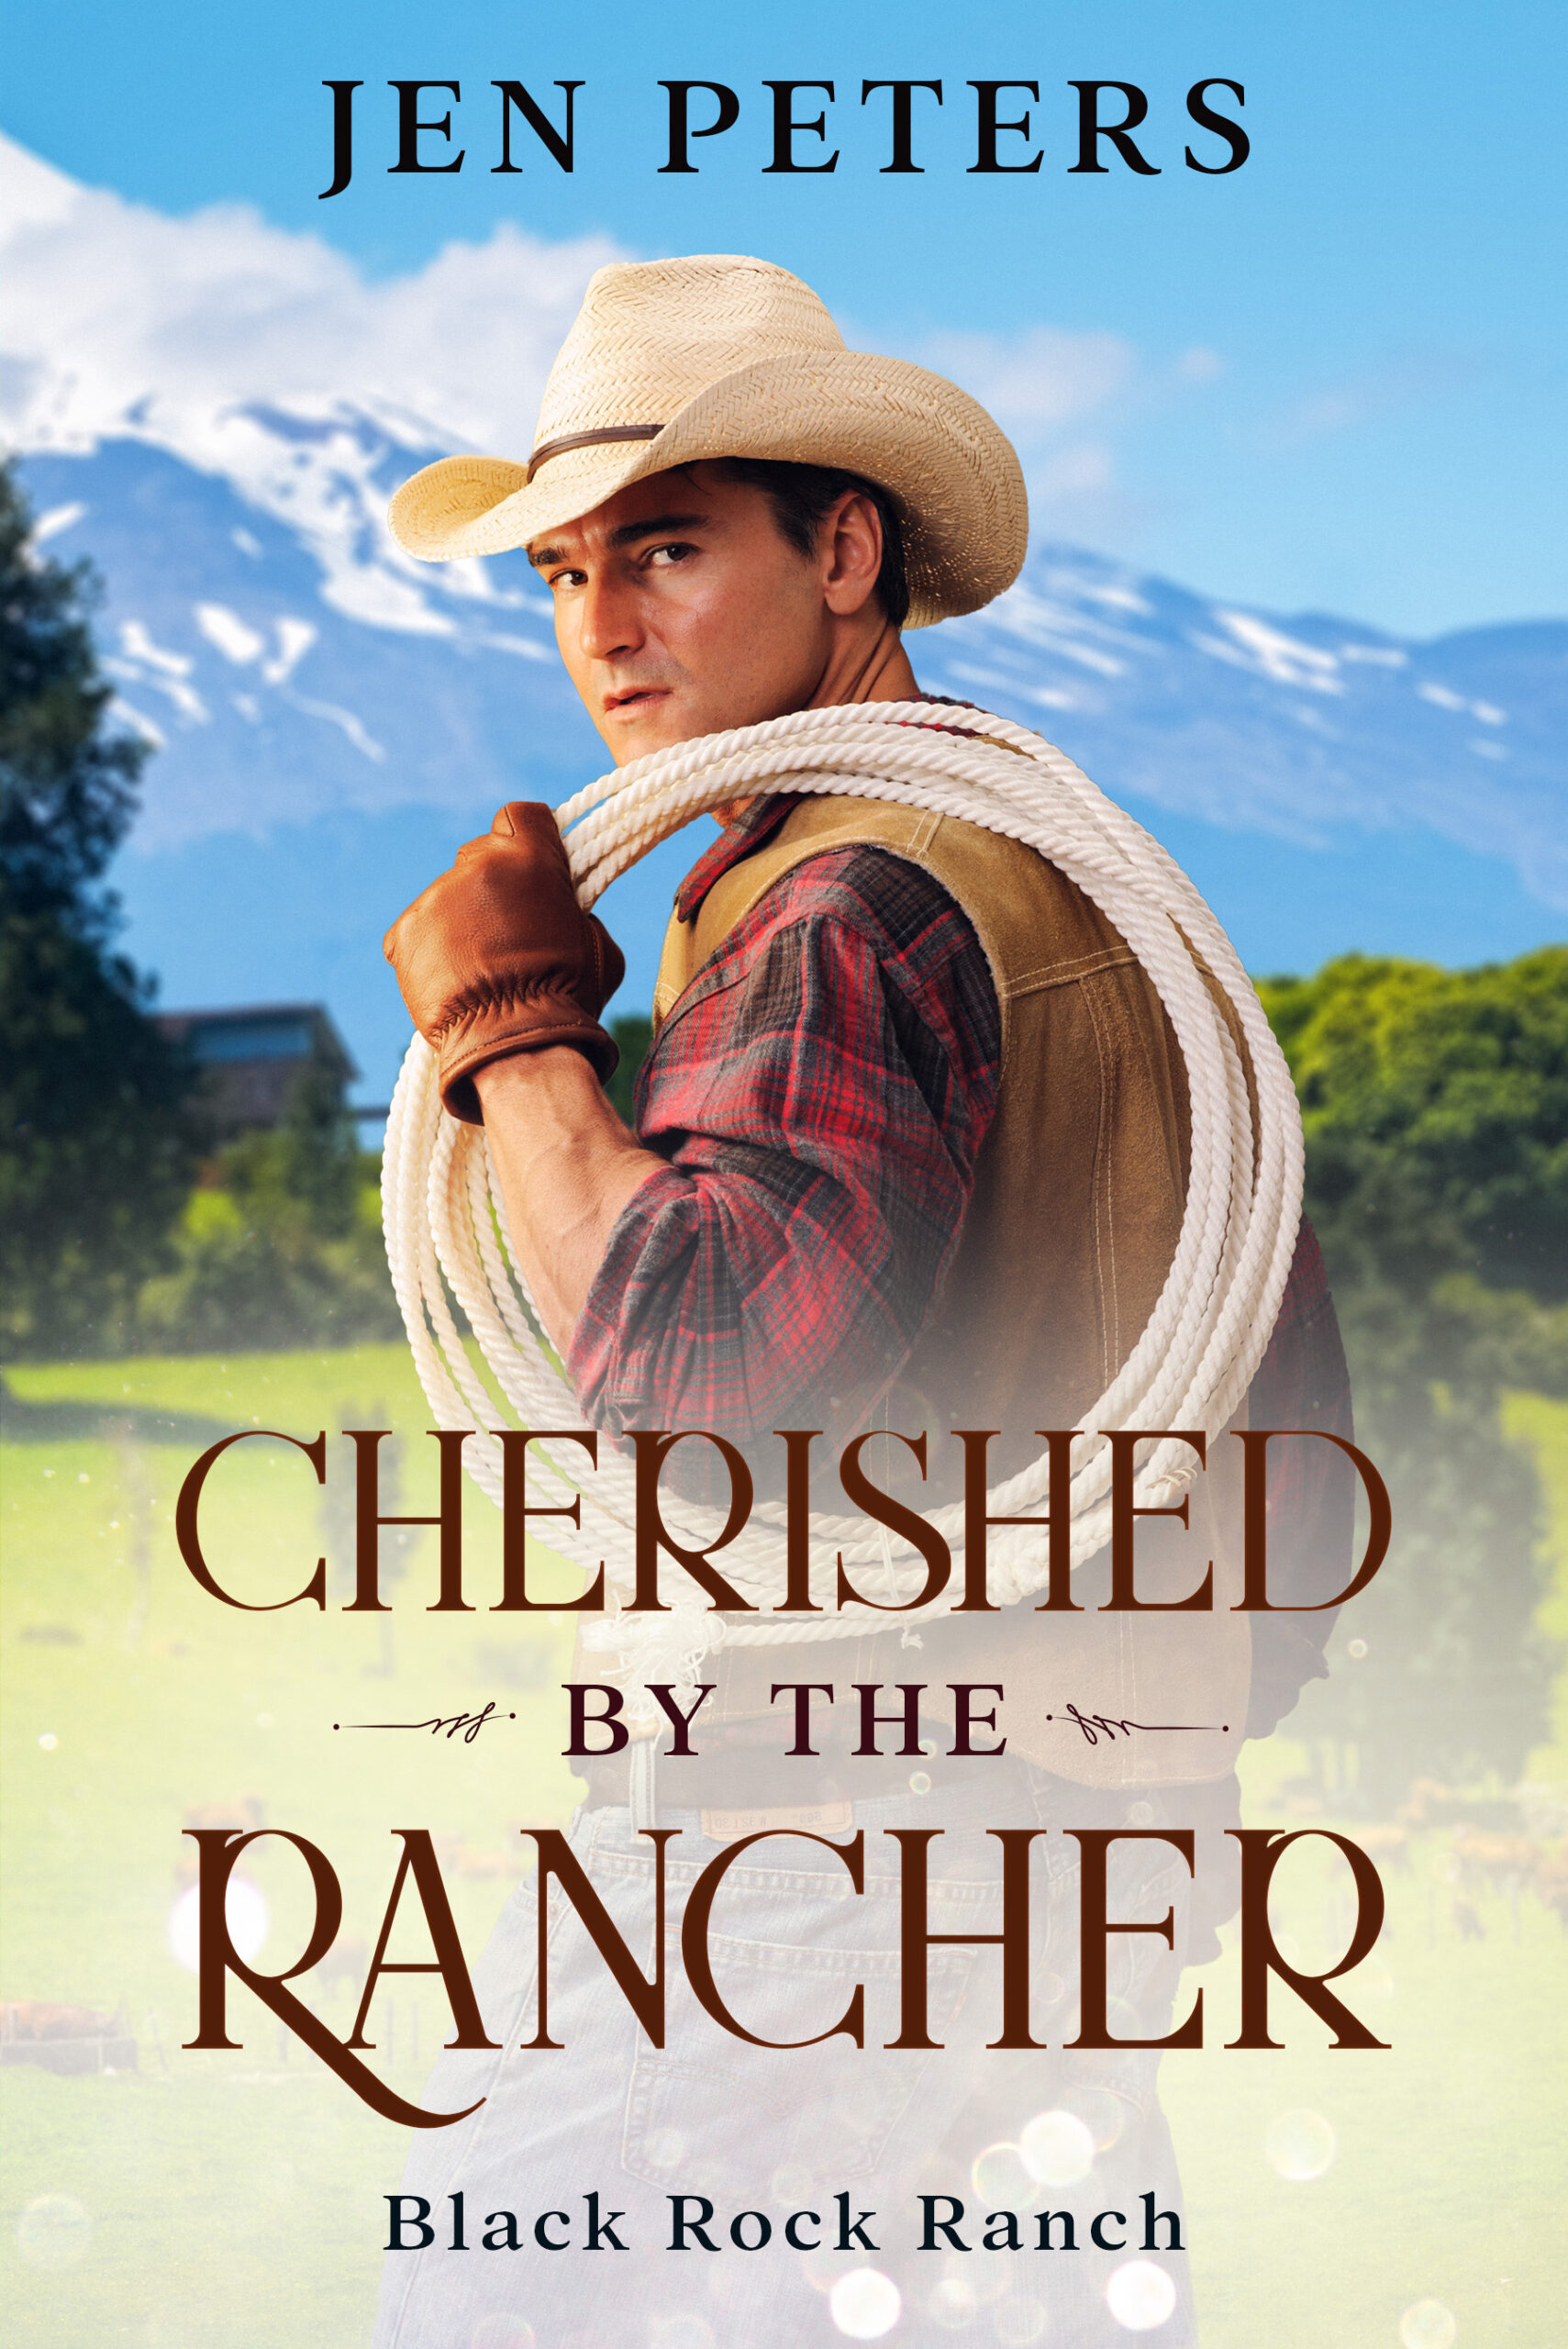 Cherished by the Rancher cover